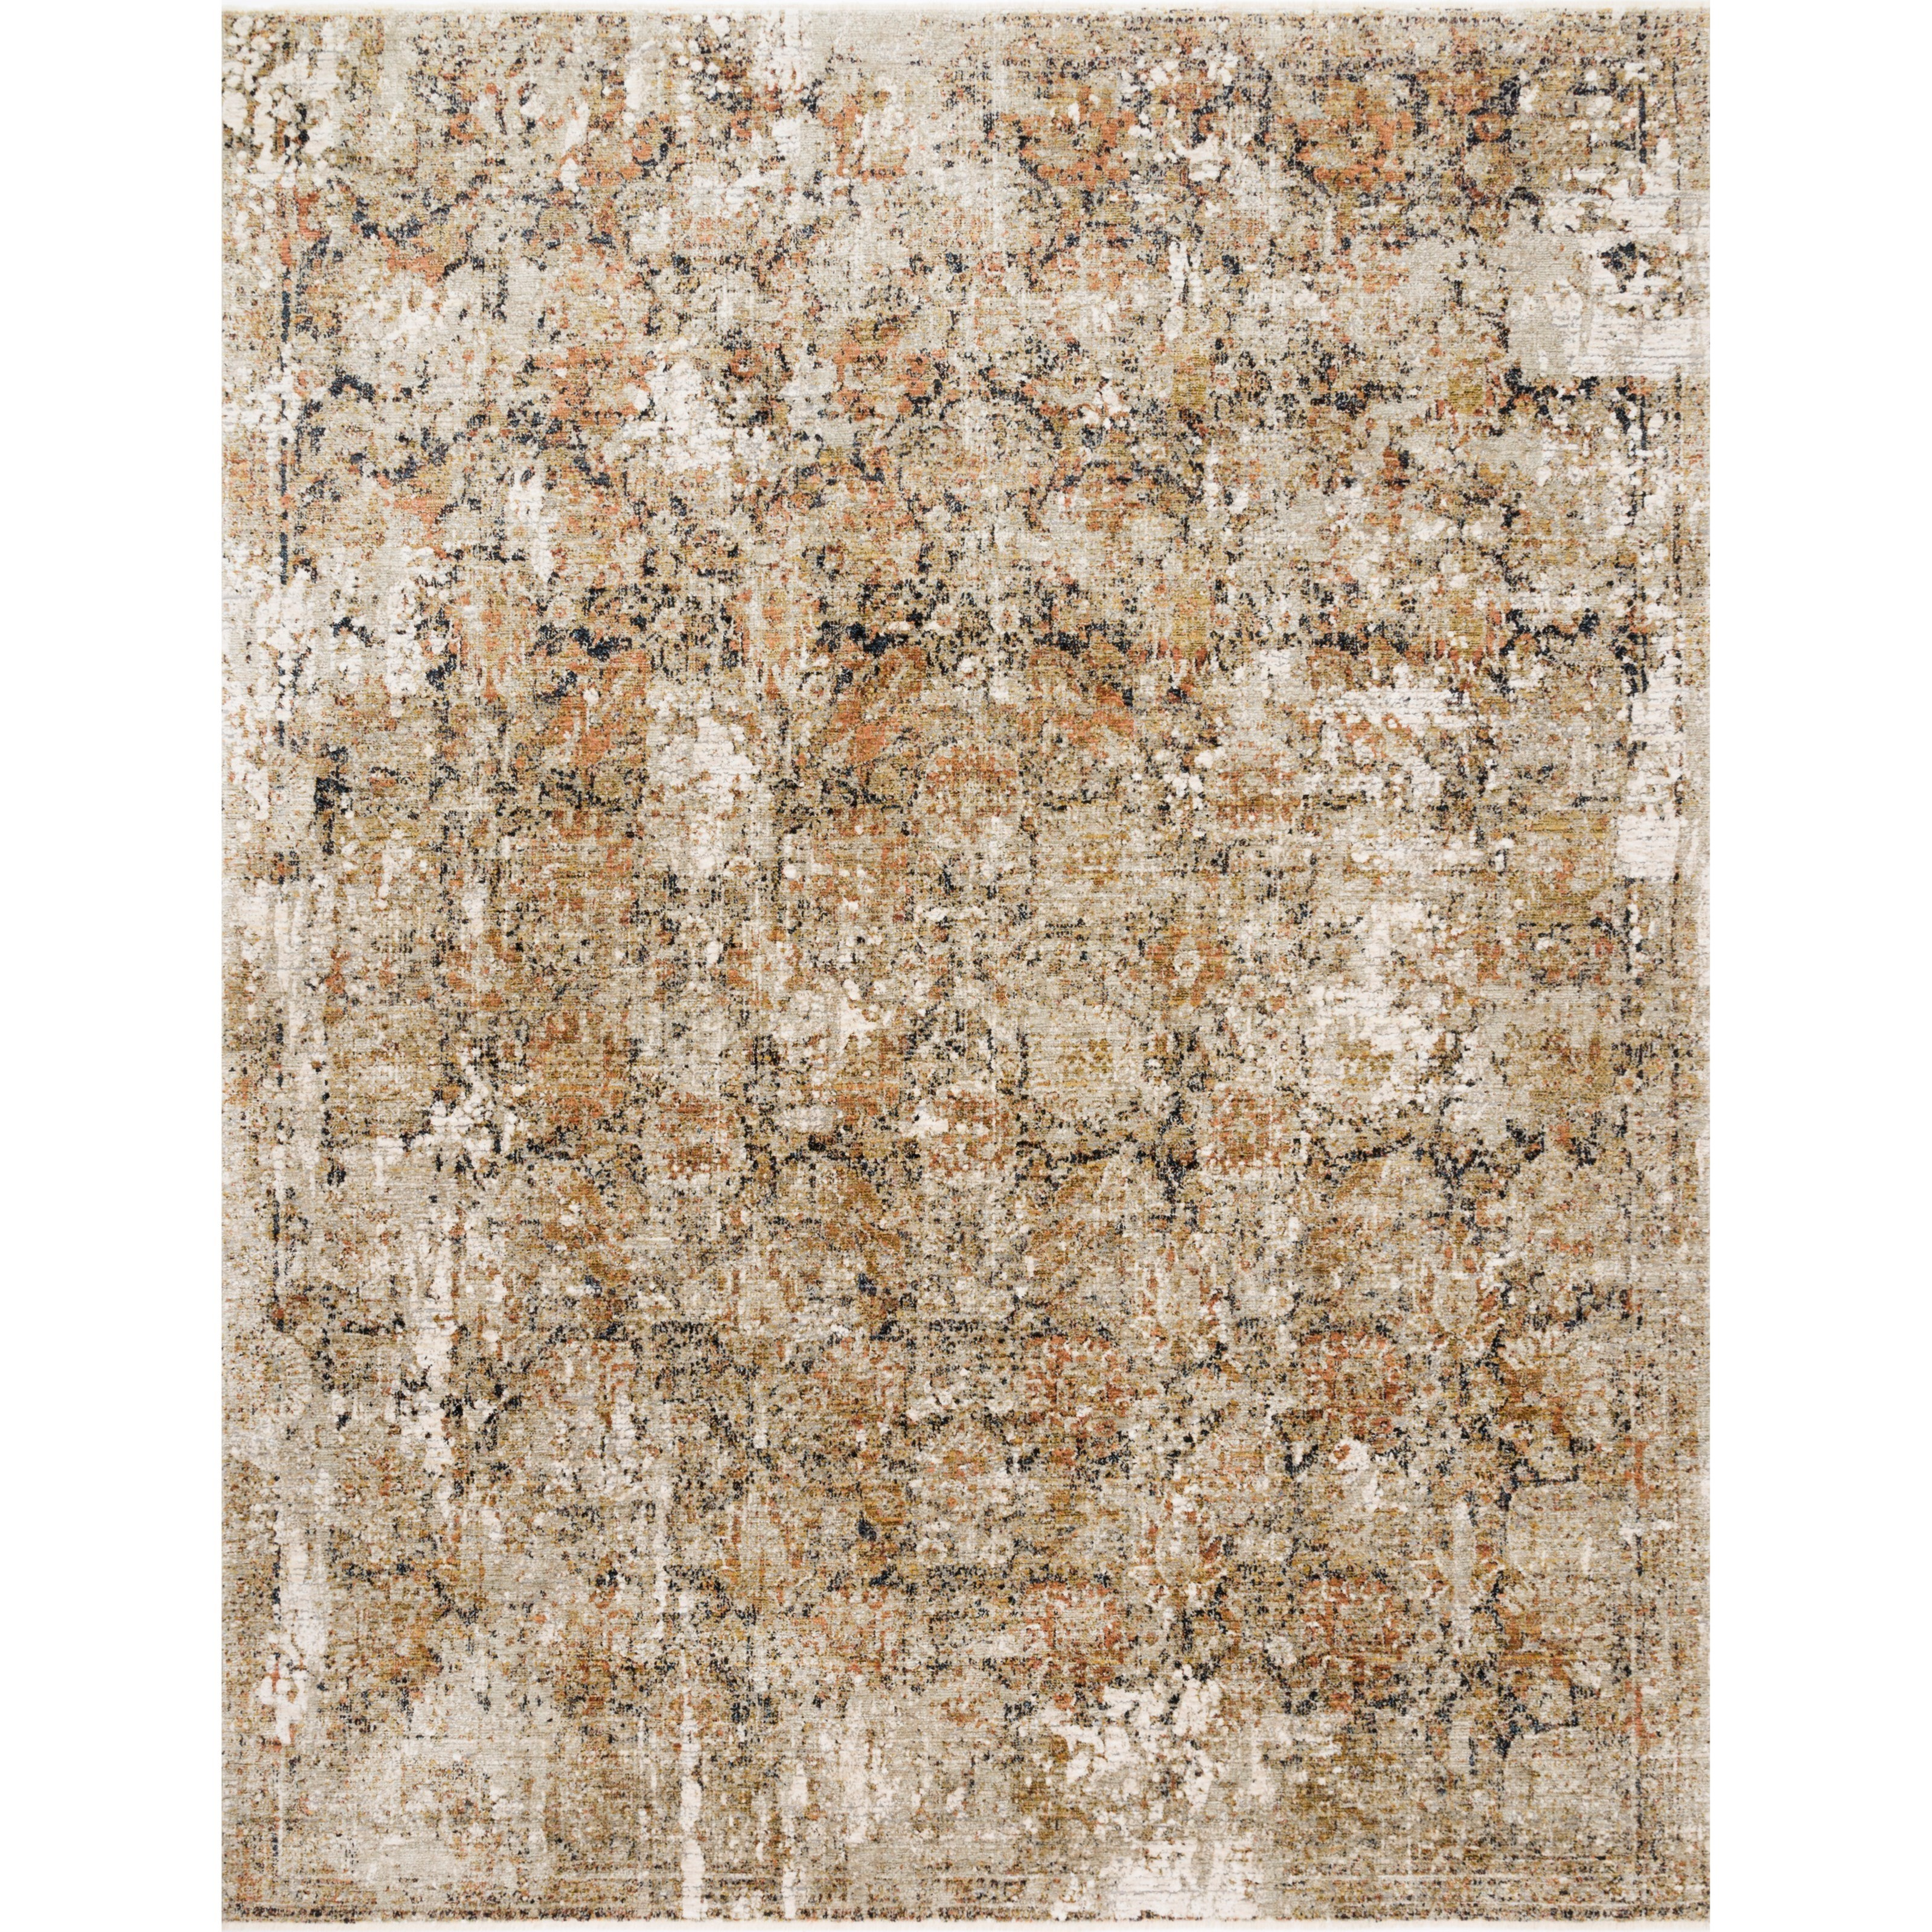 """Theia 7'10"""" x 10' Taupe / Gold Rug by Loloi Rugs at Virginia Furniture Market"""